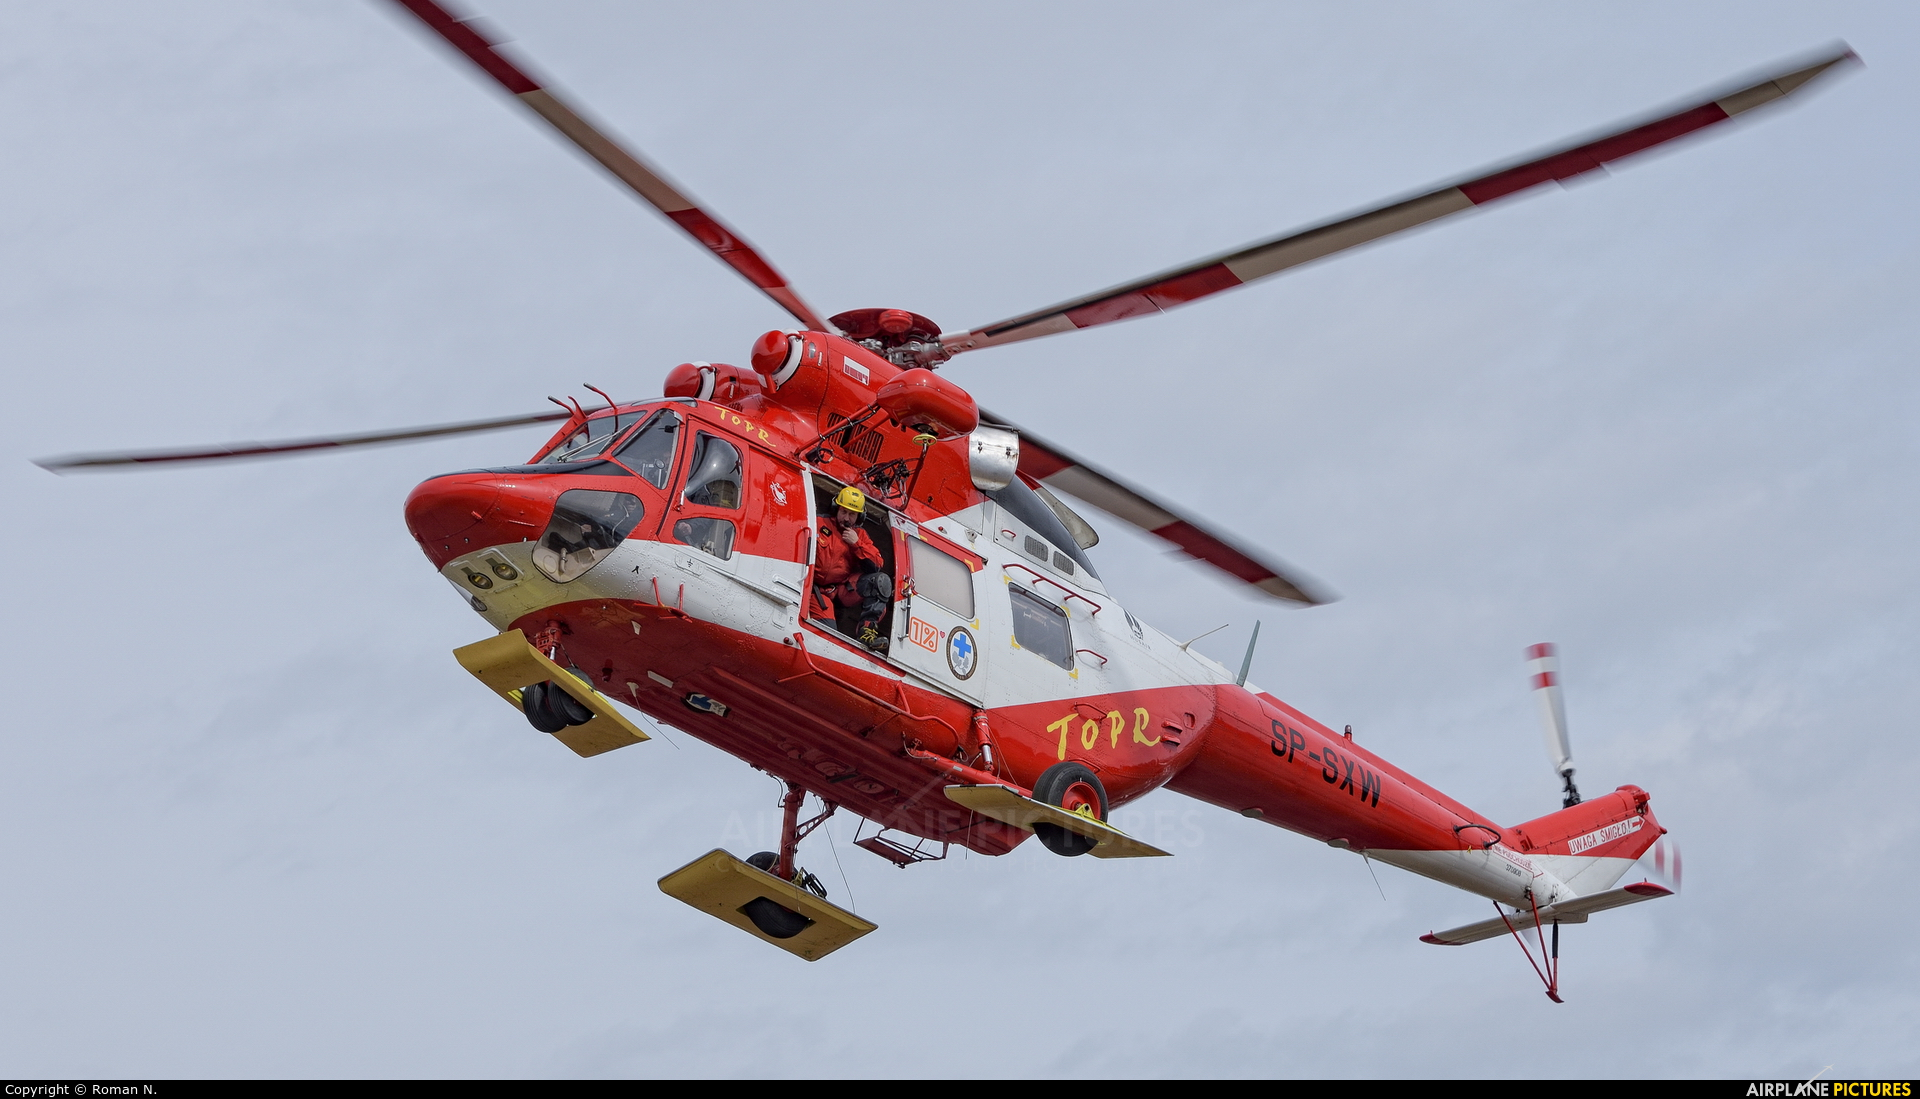 Tatra Mountains Rescue (TOPR) SP-SXW aircraft at Off Airport - Poland